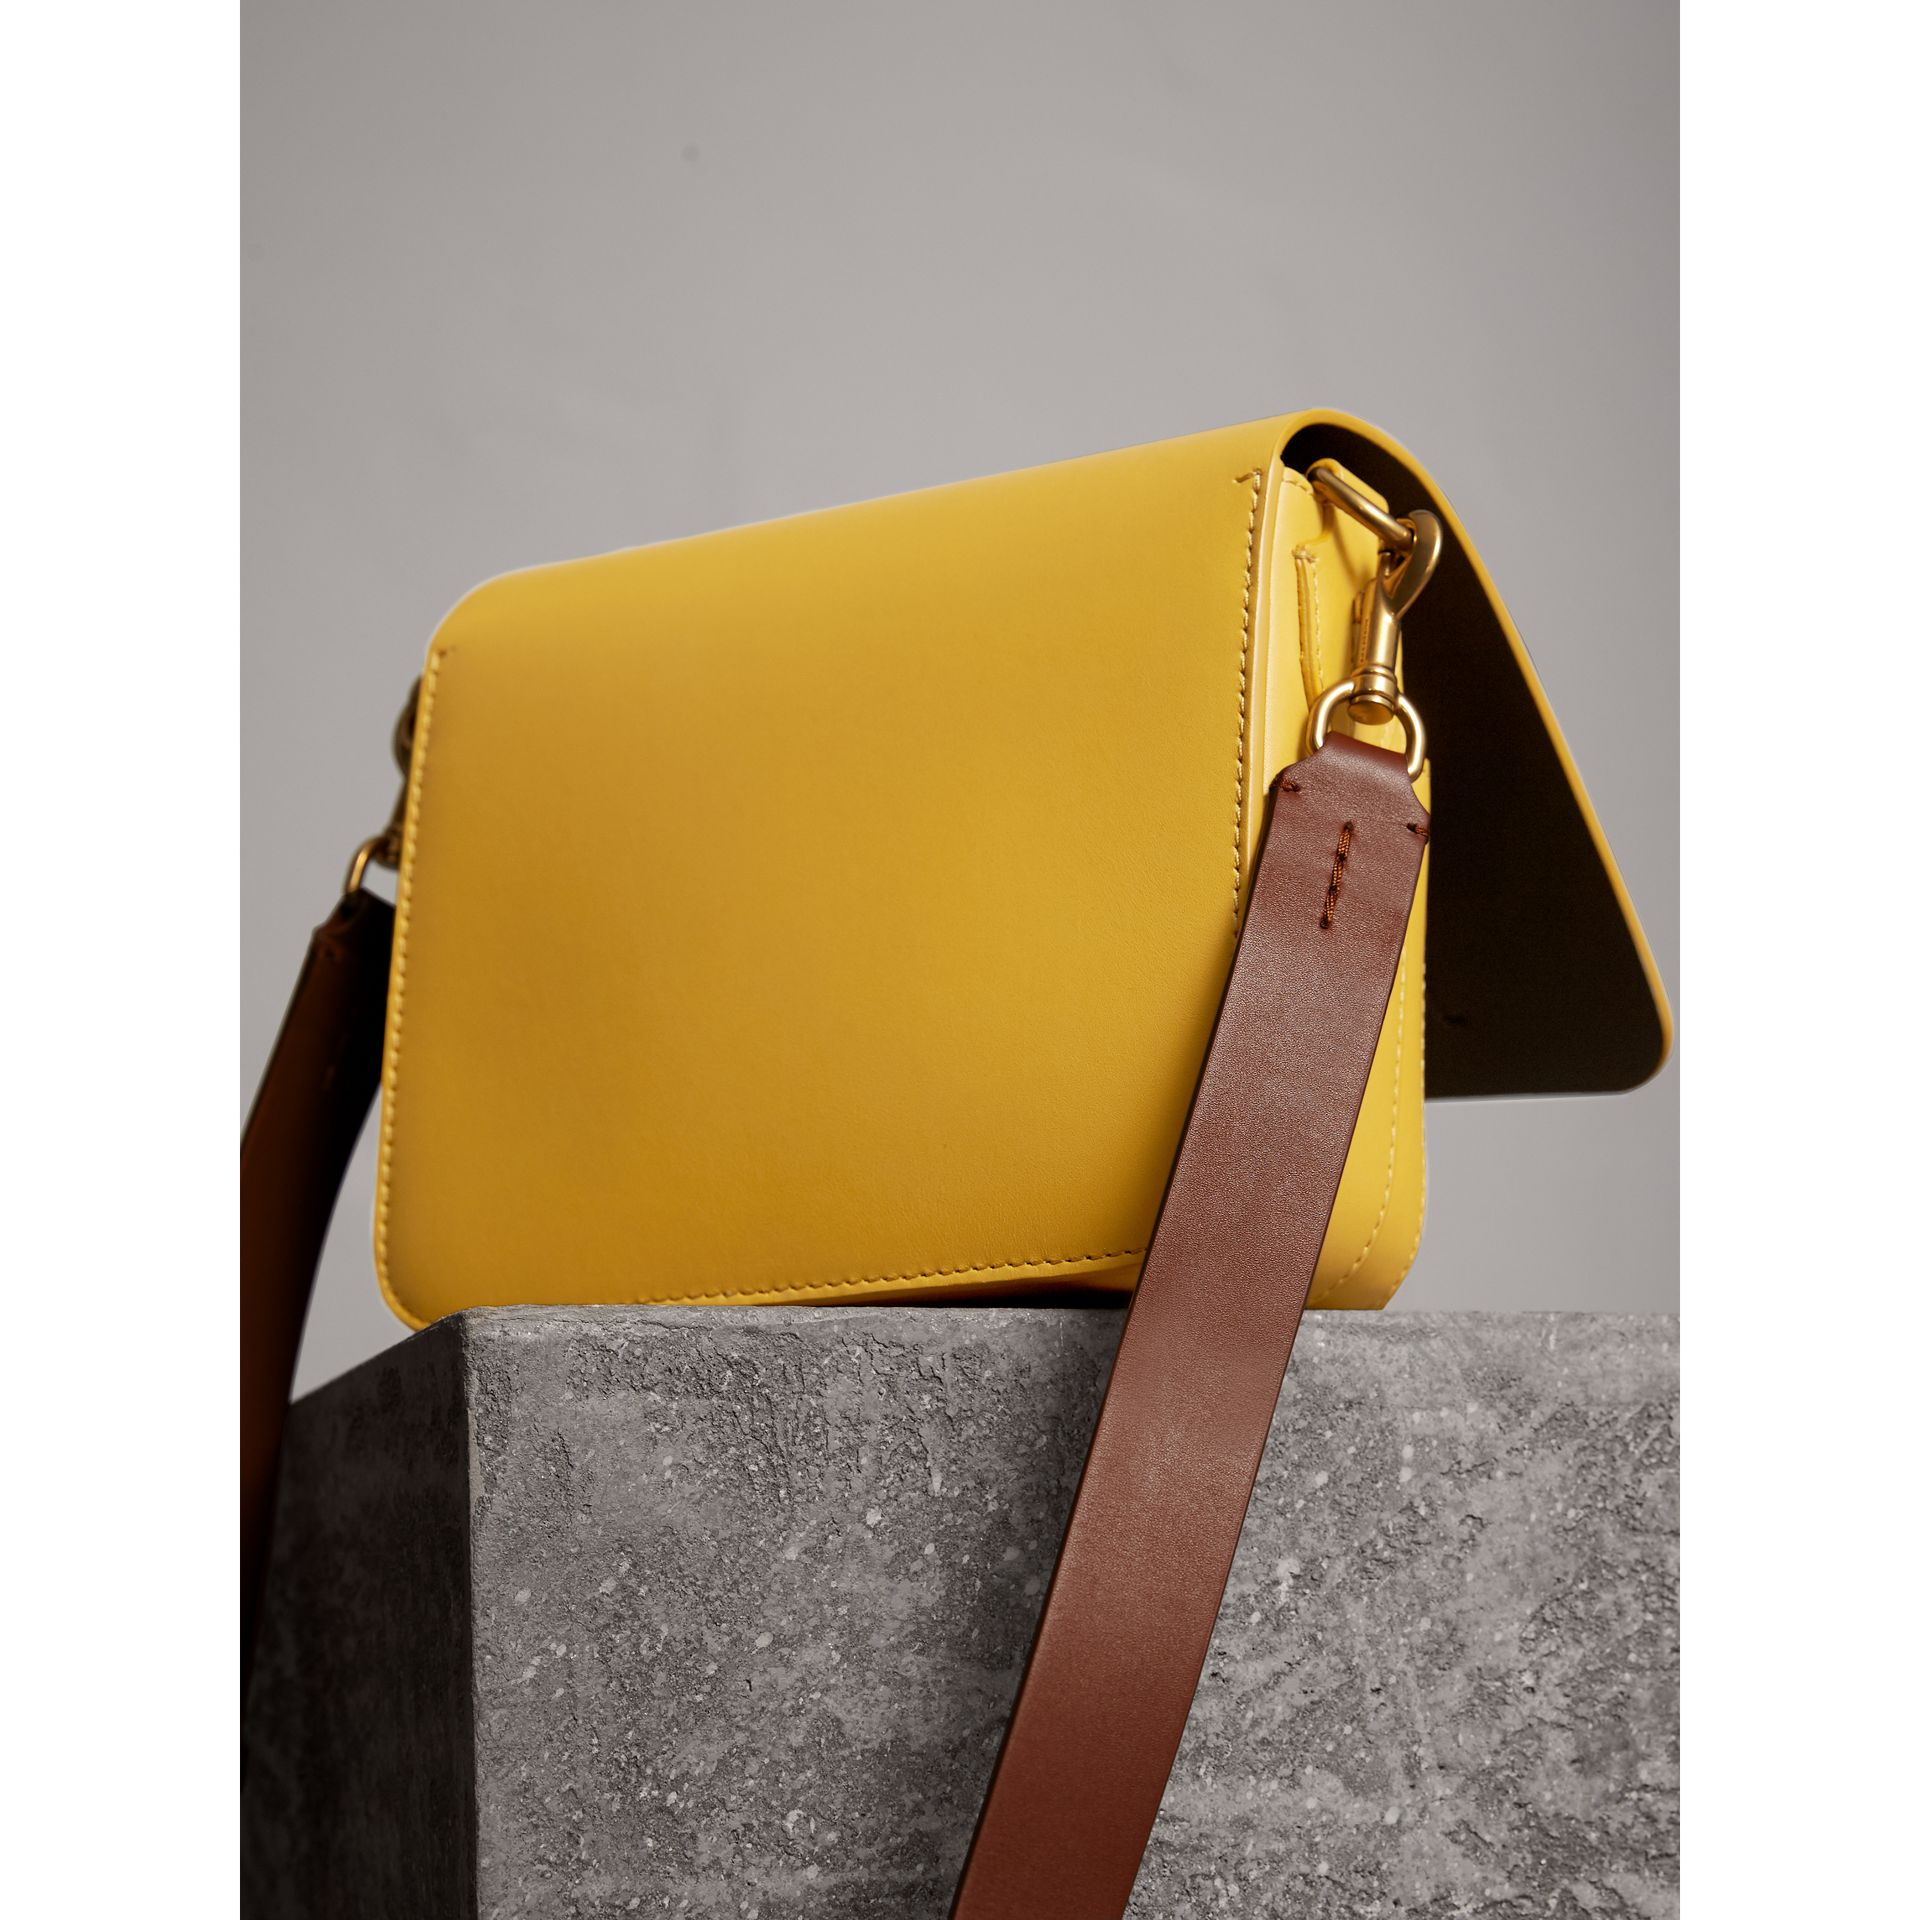 The Square Satchel in Leather in Larch Yellow - Women | Burberry - gallery image 3